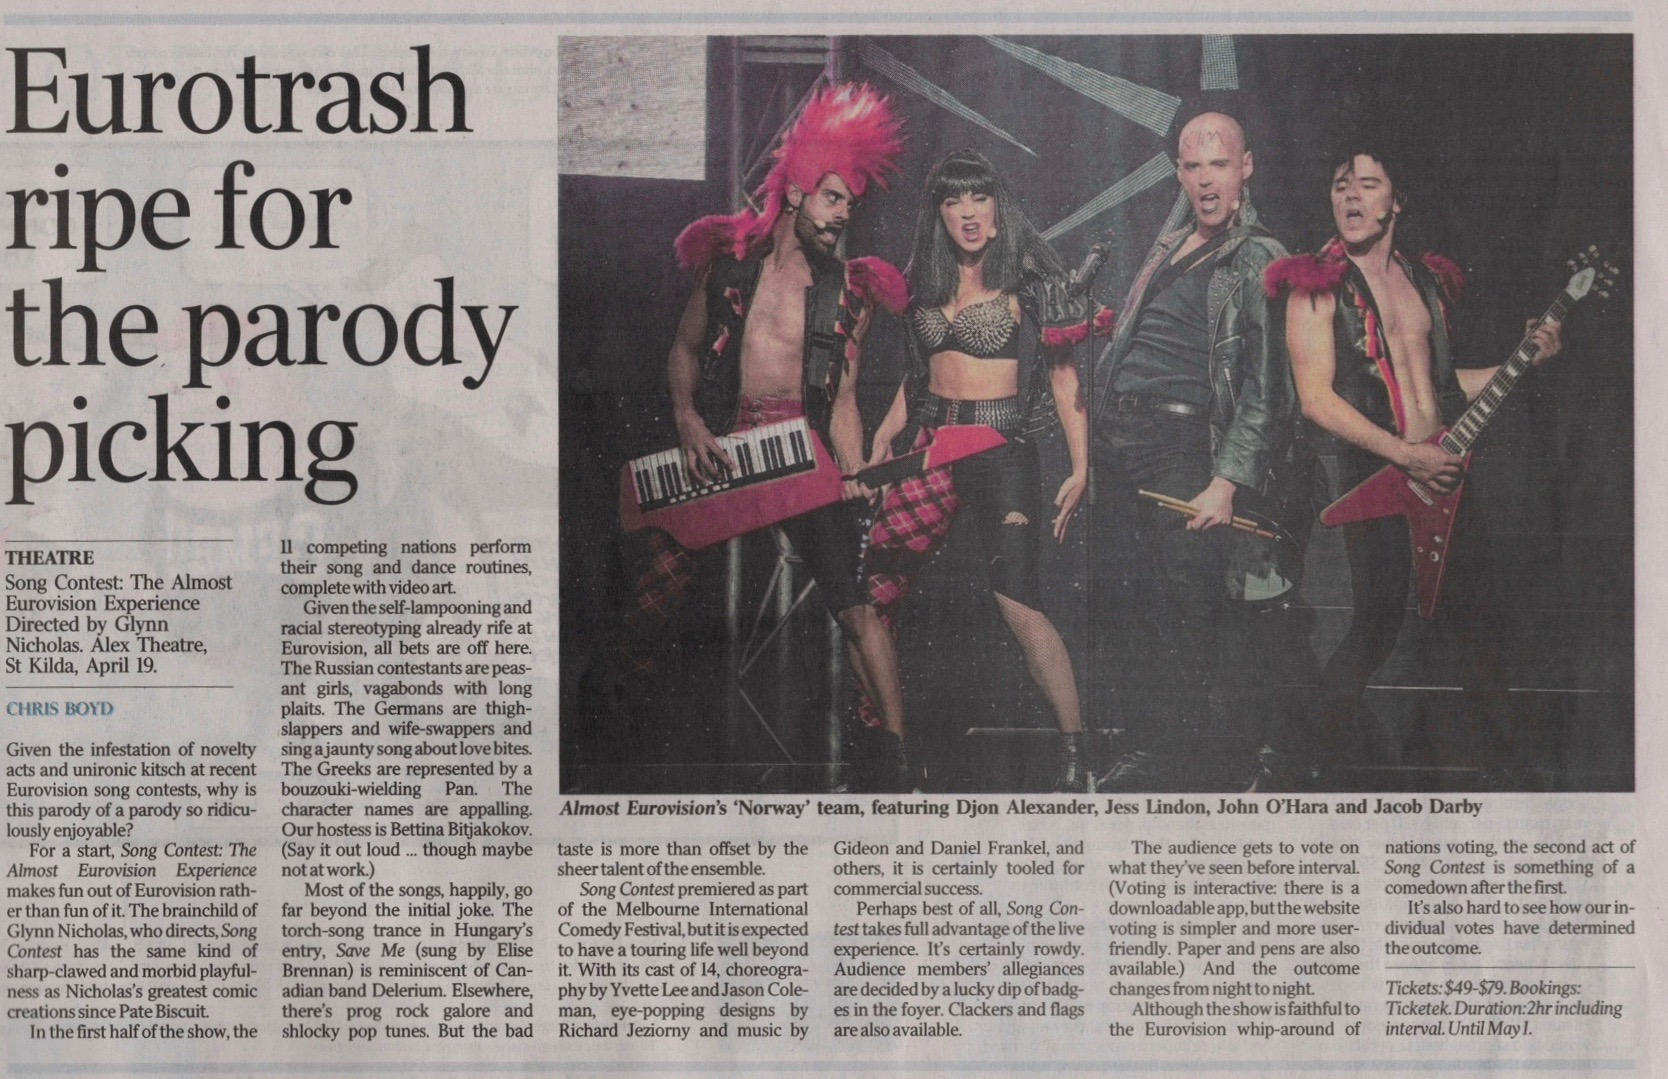 REVIEW BY CHRIS BOYD FROM 'THE AUSTRALIAN'